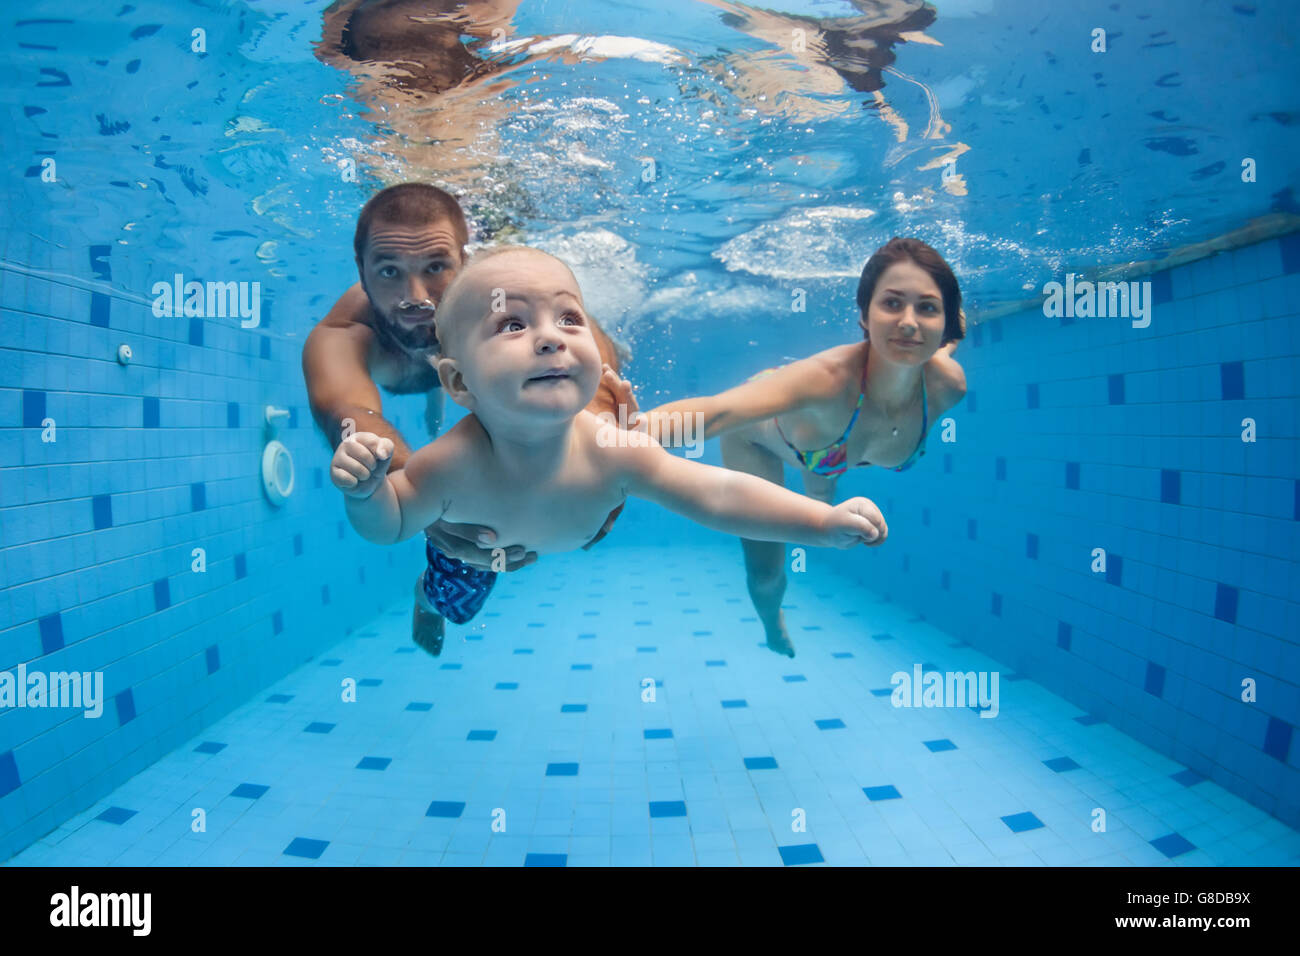 Happy full family - mother, father, baby son learn to swim, dive underwater with fun in pool to keep fit. - Stock Image